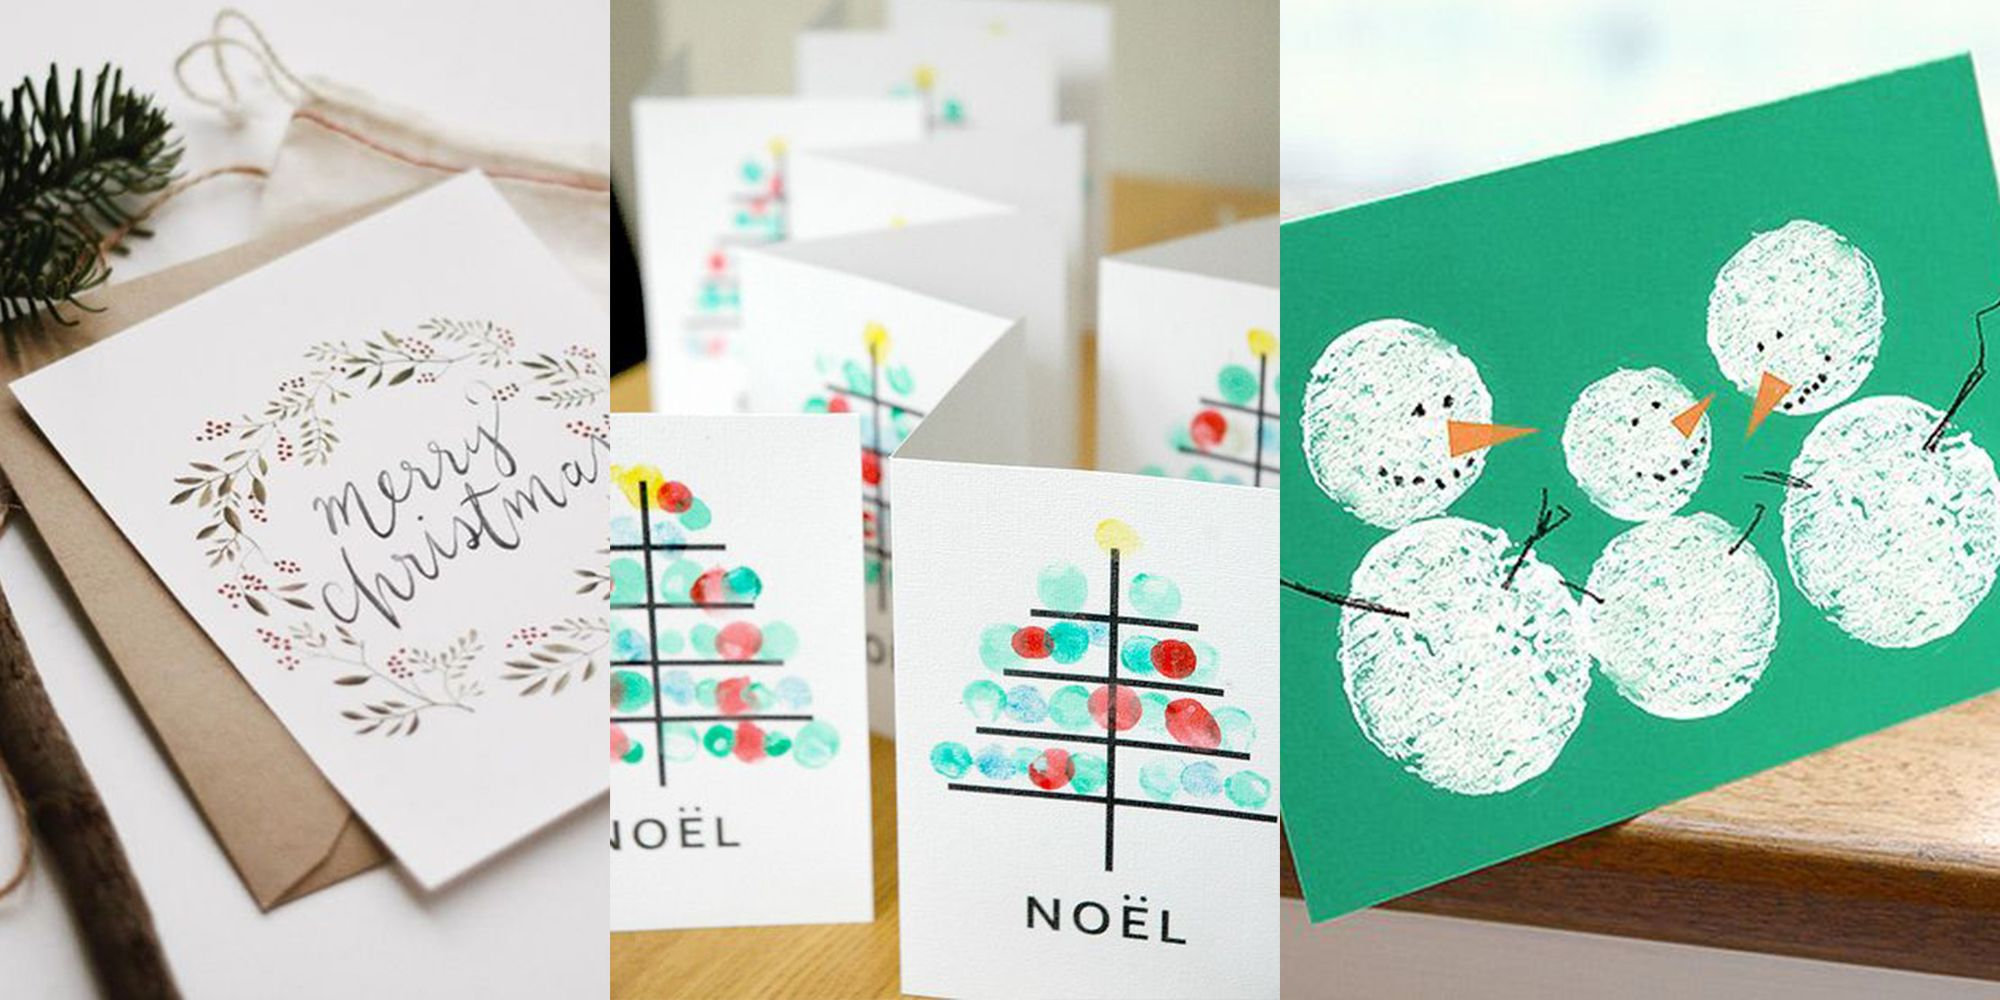 35 of the best handmade Christmas card ideas on Pinterest